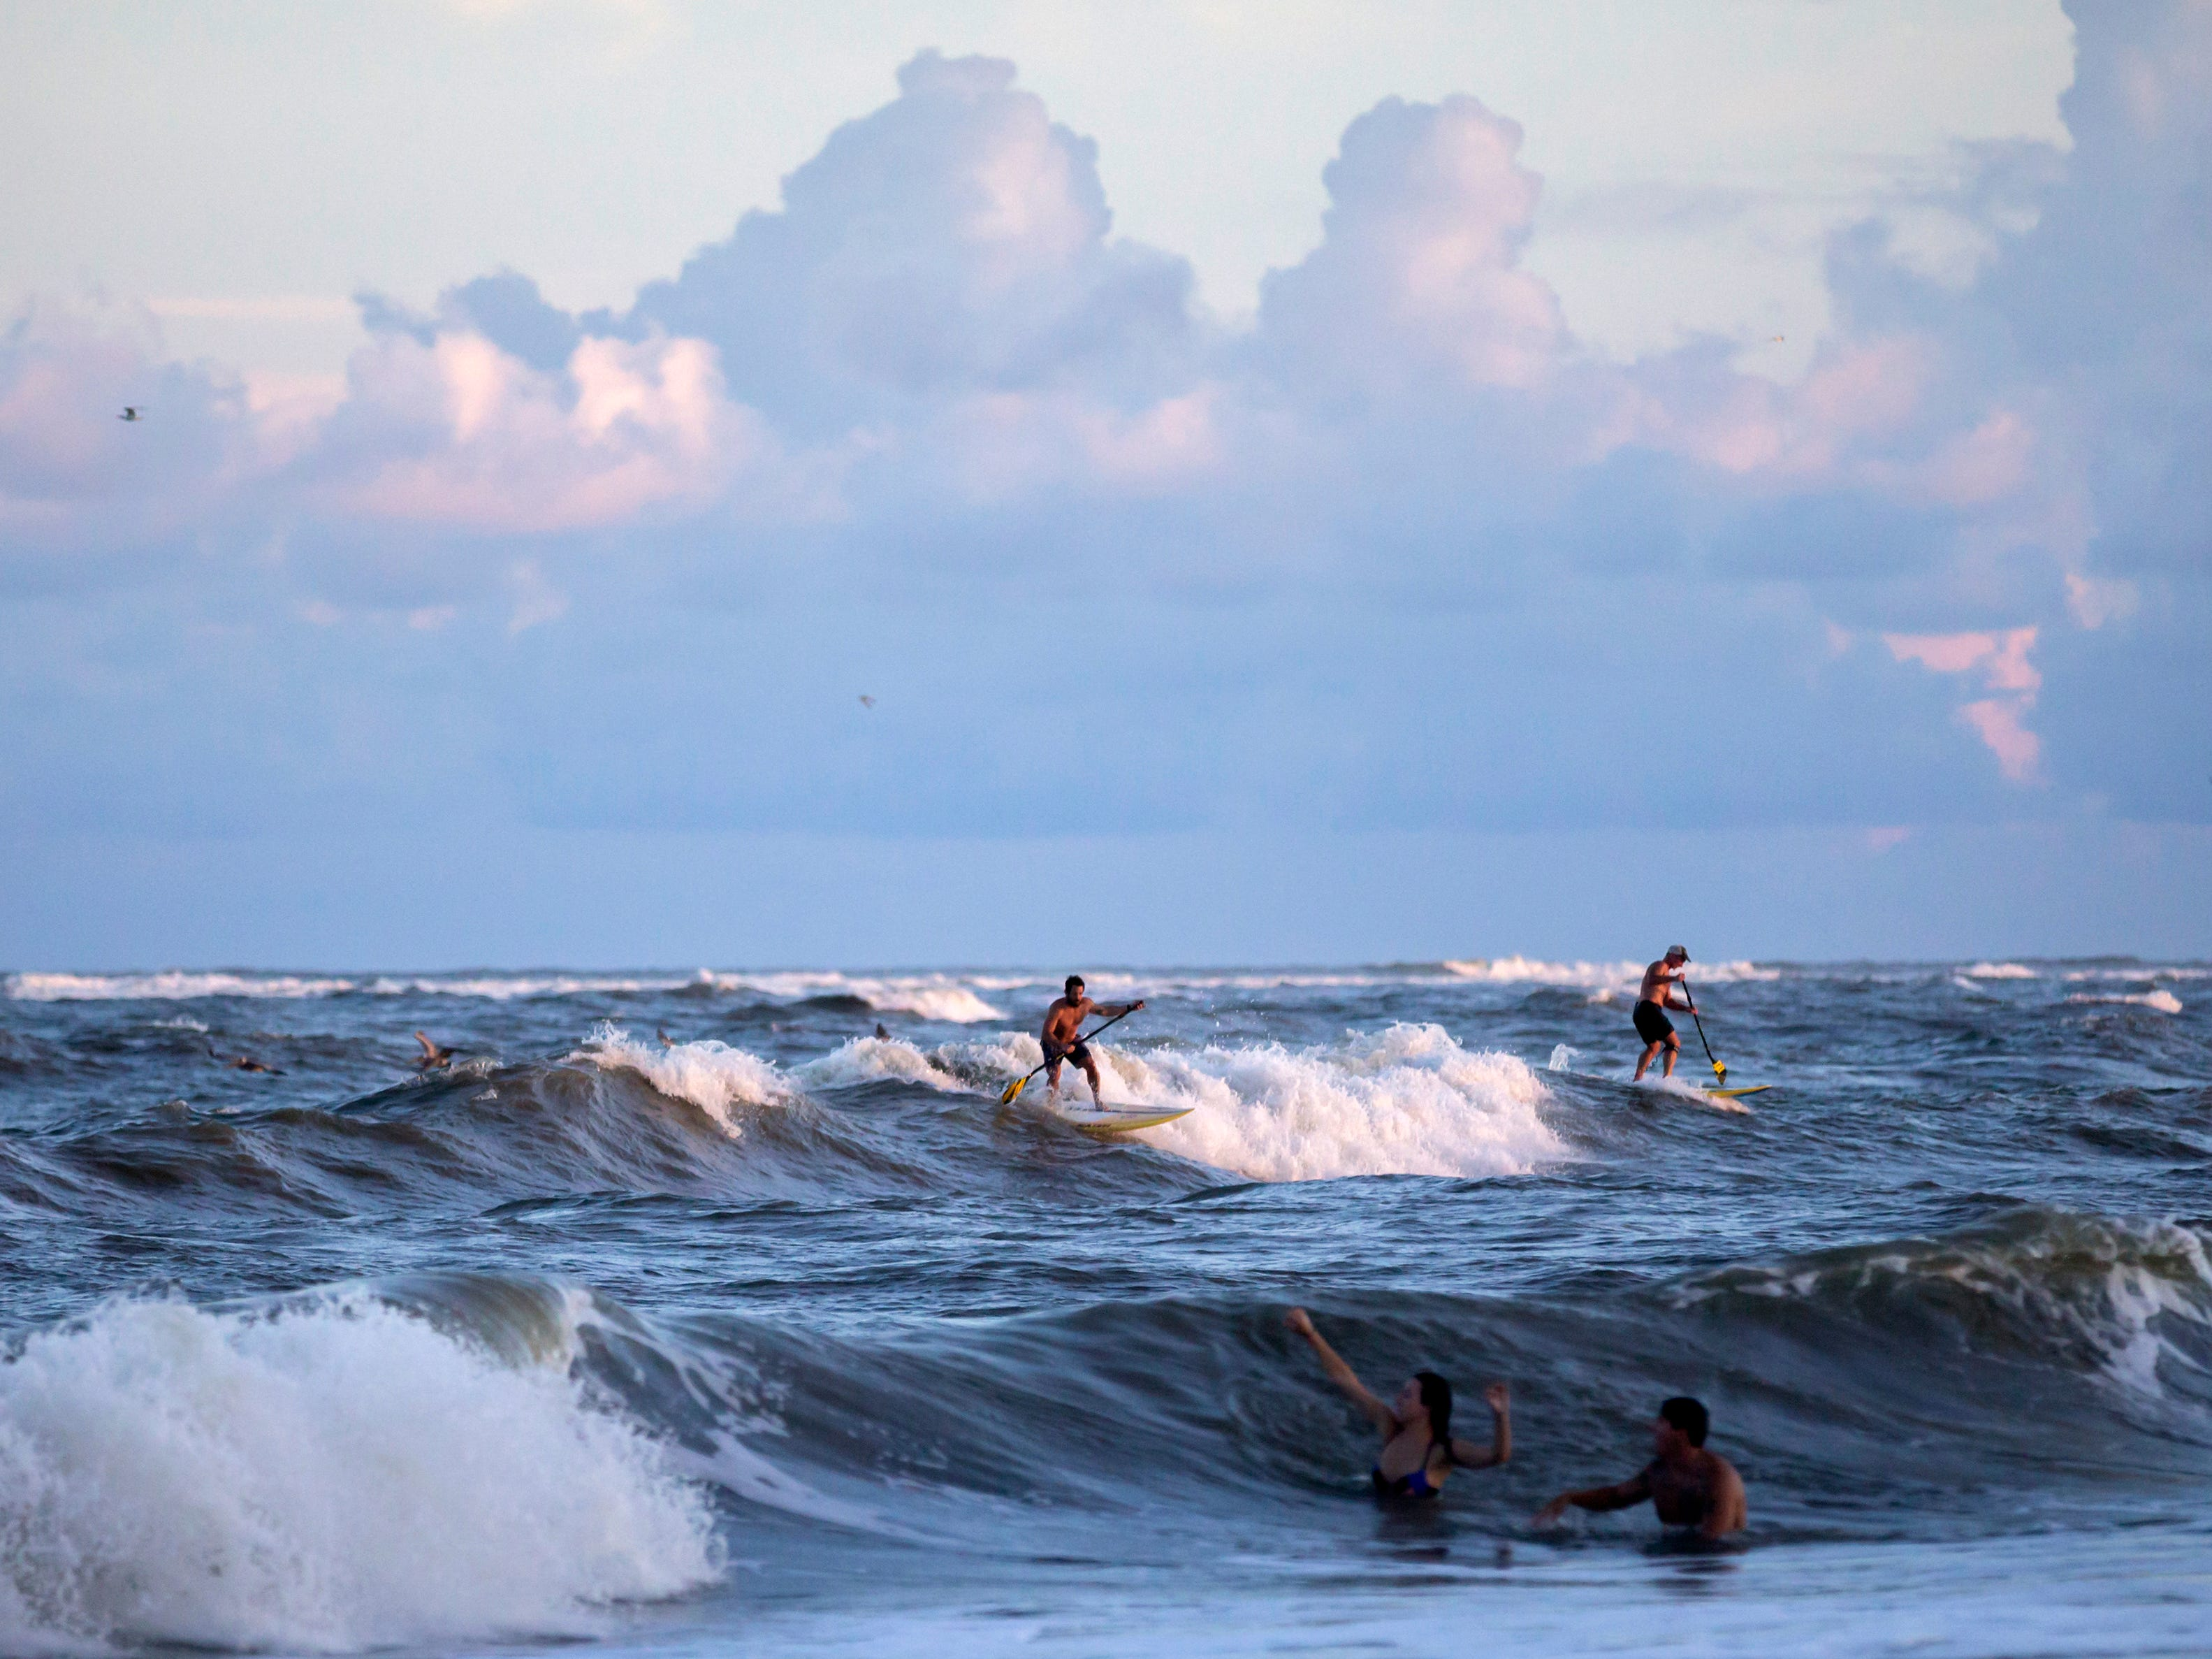 Stand-up paddle surfer Travis Storey, center, rides a wave from the approaching Hurricane Florence, Wednesday, Sept., 12, 2018, on the south beach of Tybee Island, Ga. Storey said the waves have been gradually building in size as the storm draws closer to the East Coast.